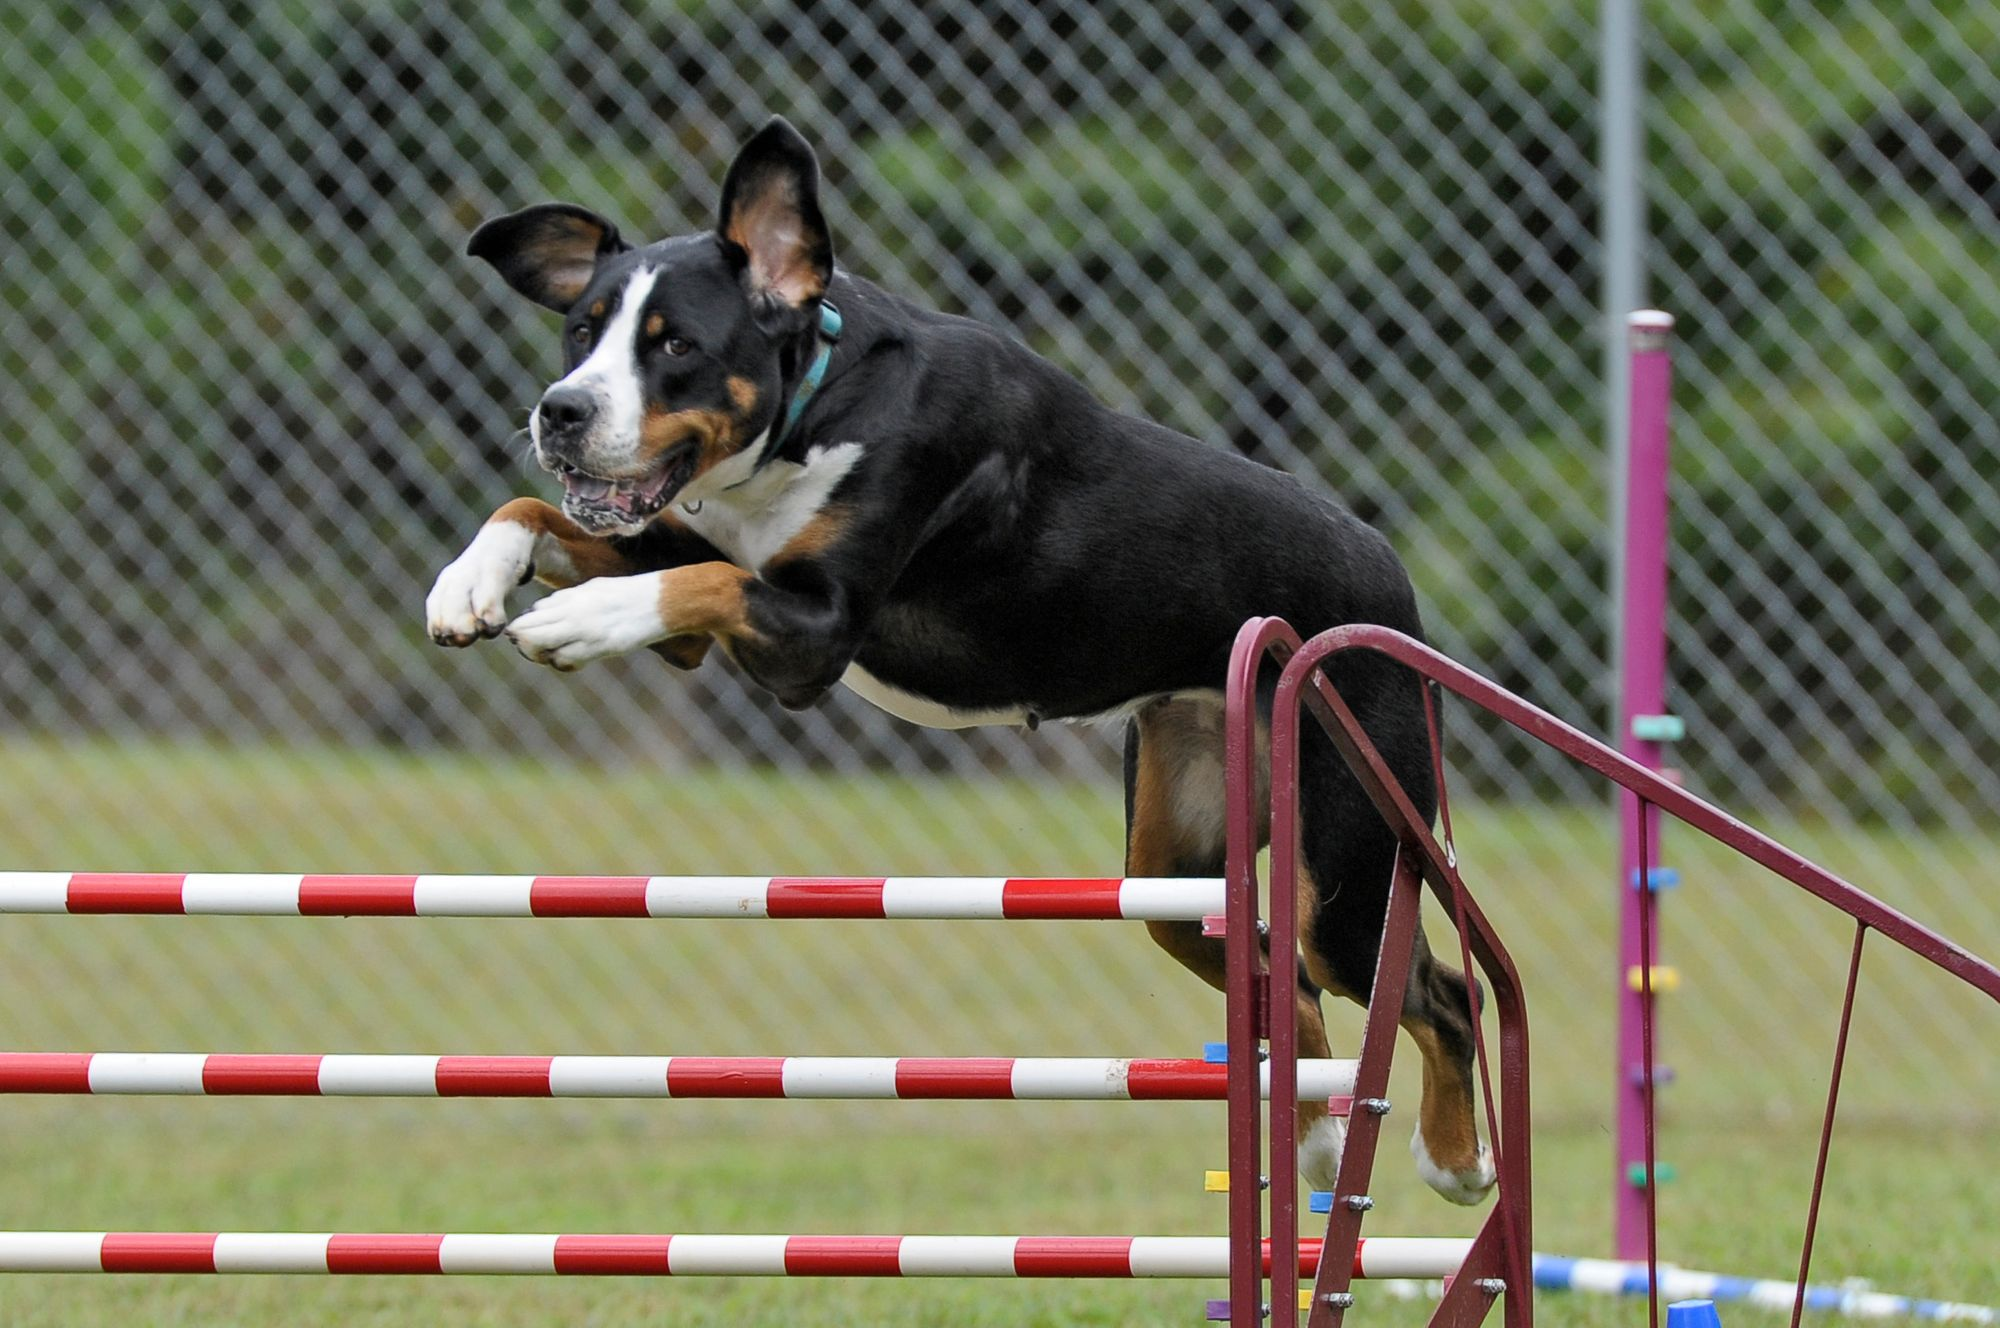 How To Make An At-Home Agility Course